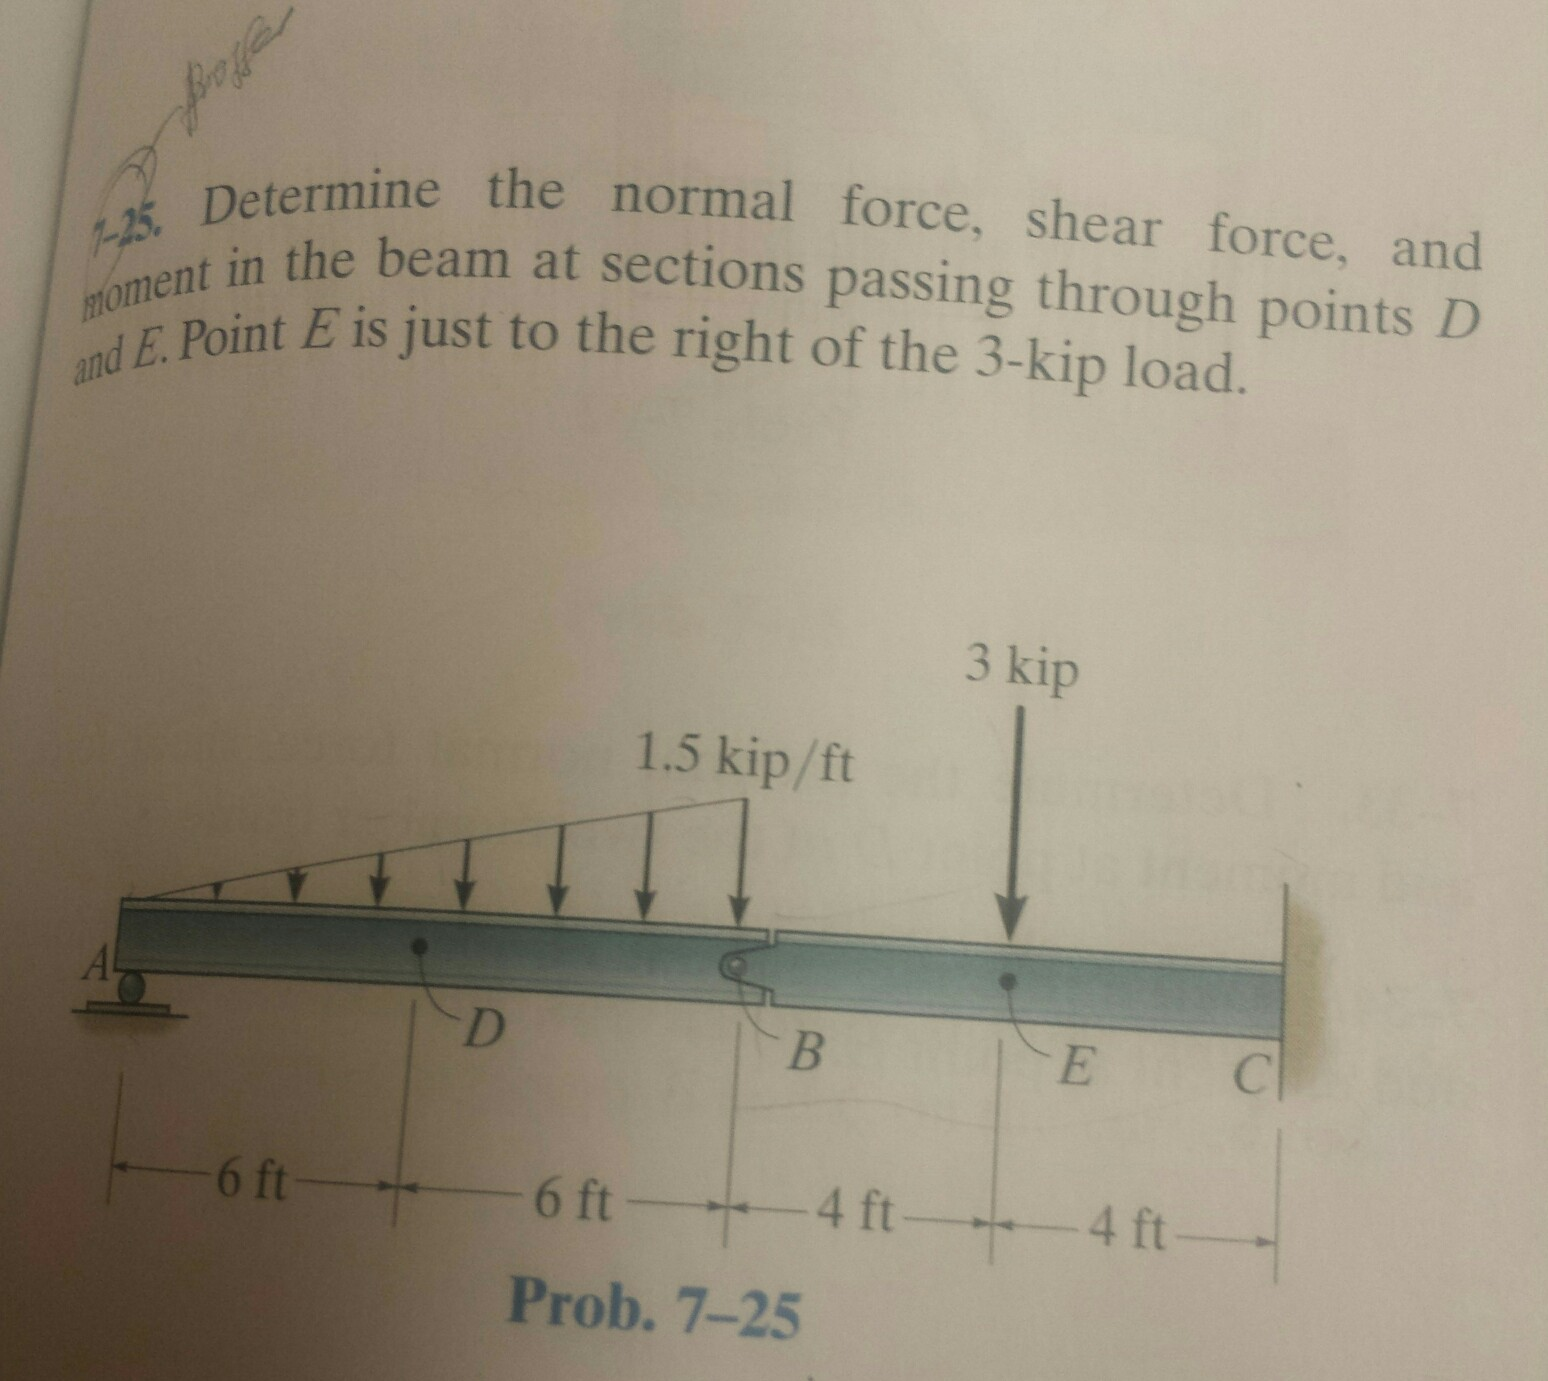 Solved: Mine The Normal Force, Shear Force, And In The Bea